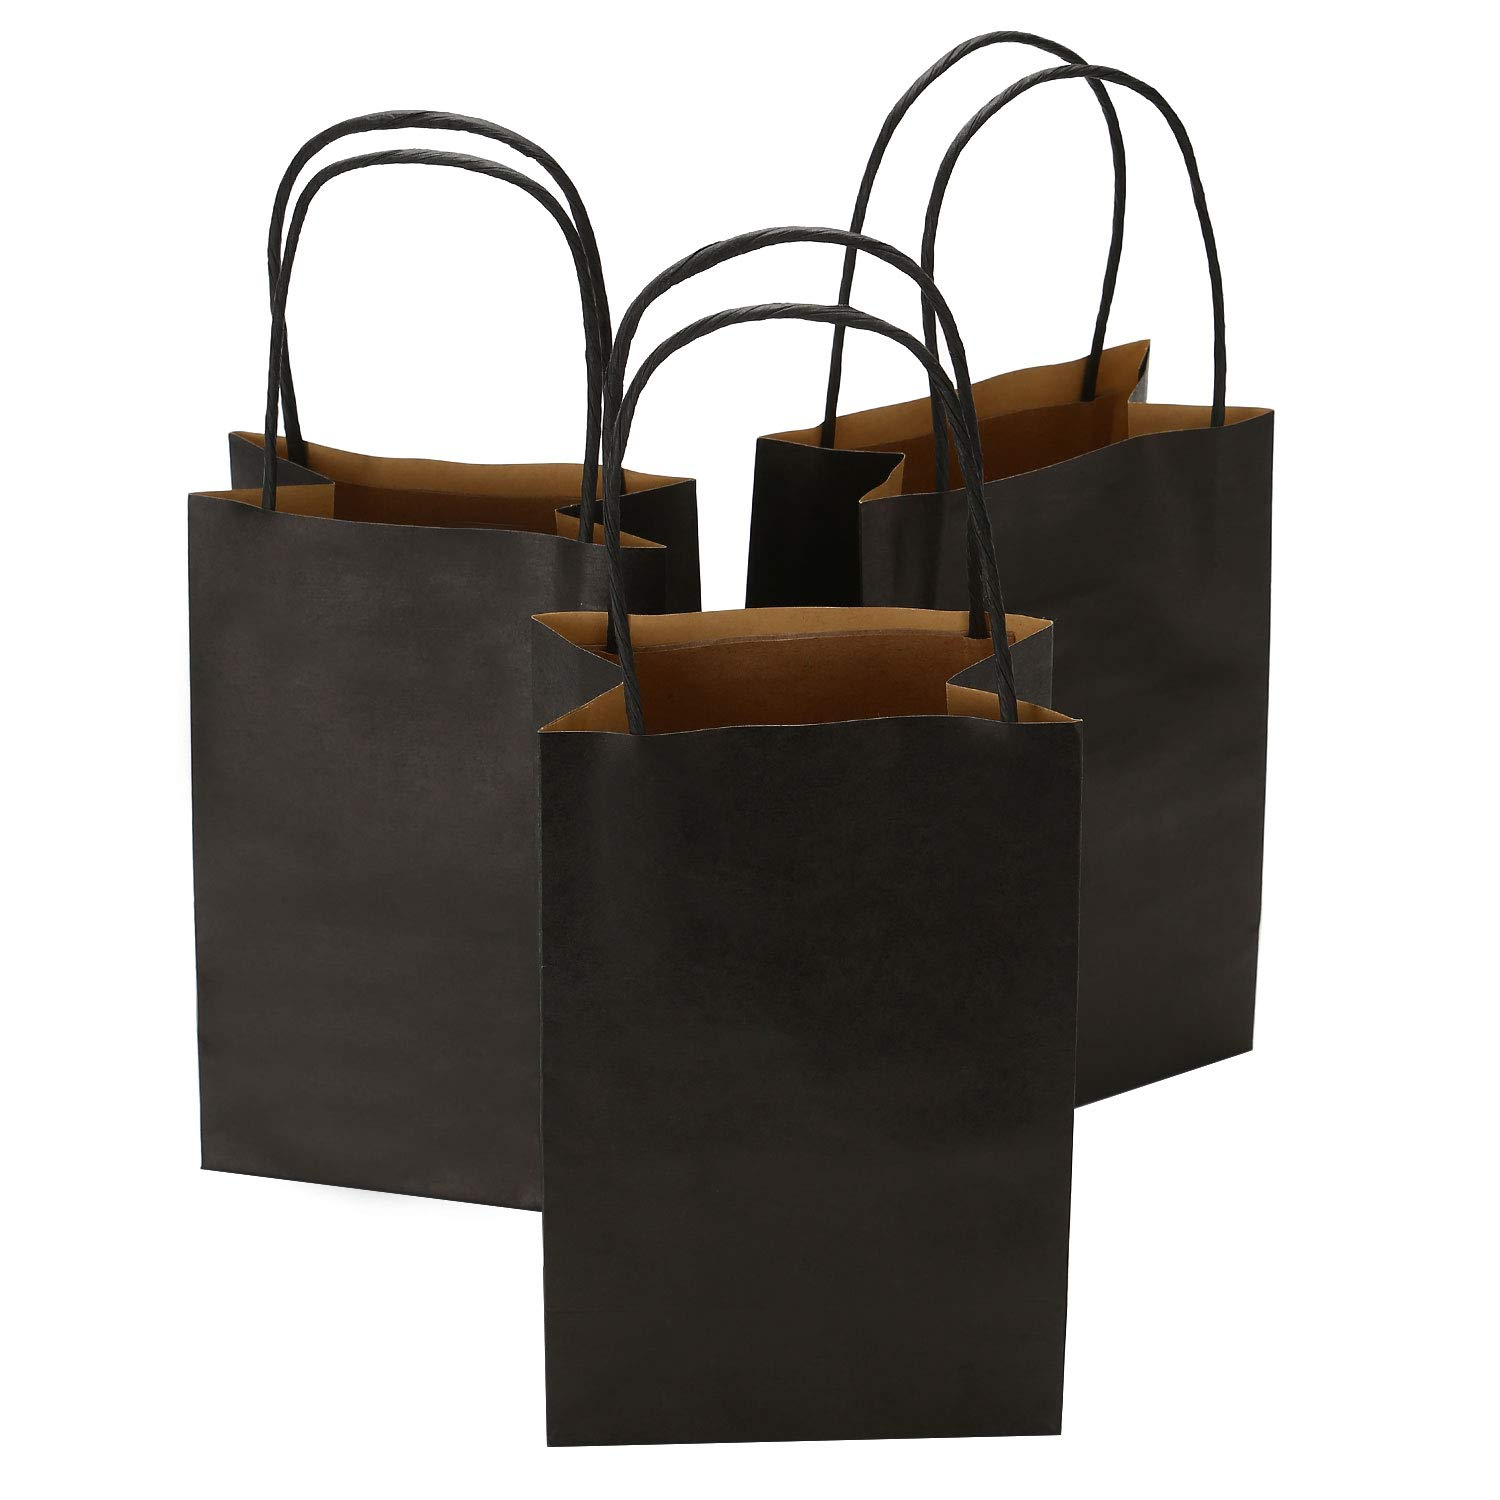 Road 5.25 x 3.25 x 8 Inches 100pcs Black Kraft Paper Bags with Handle, Shopping Bag, Retail bag, Craft Bag, Merchandise Bag, Party Bag by Road